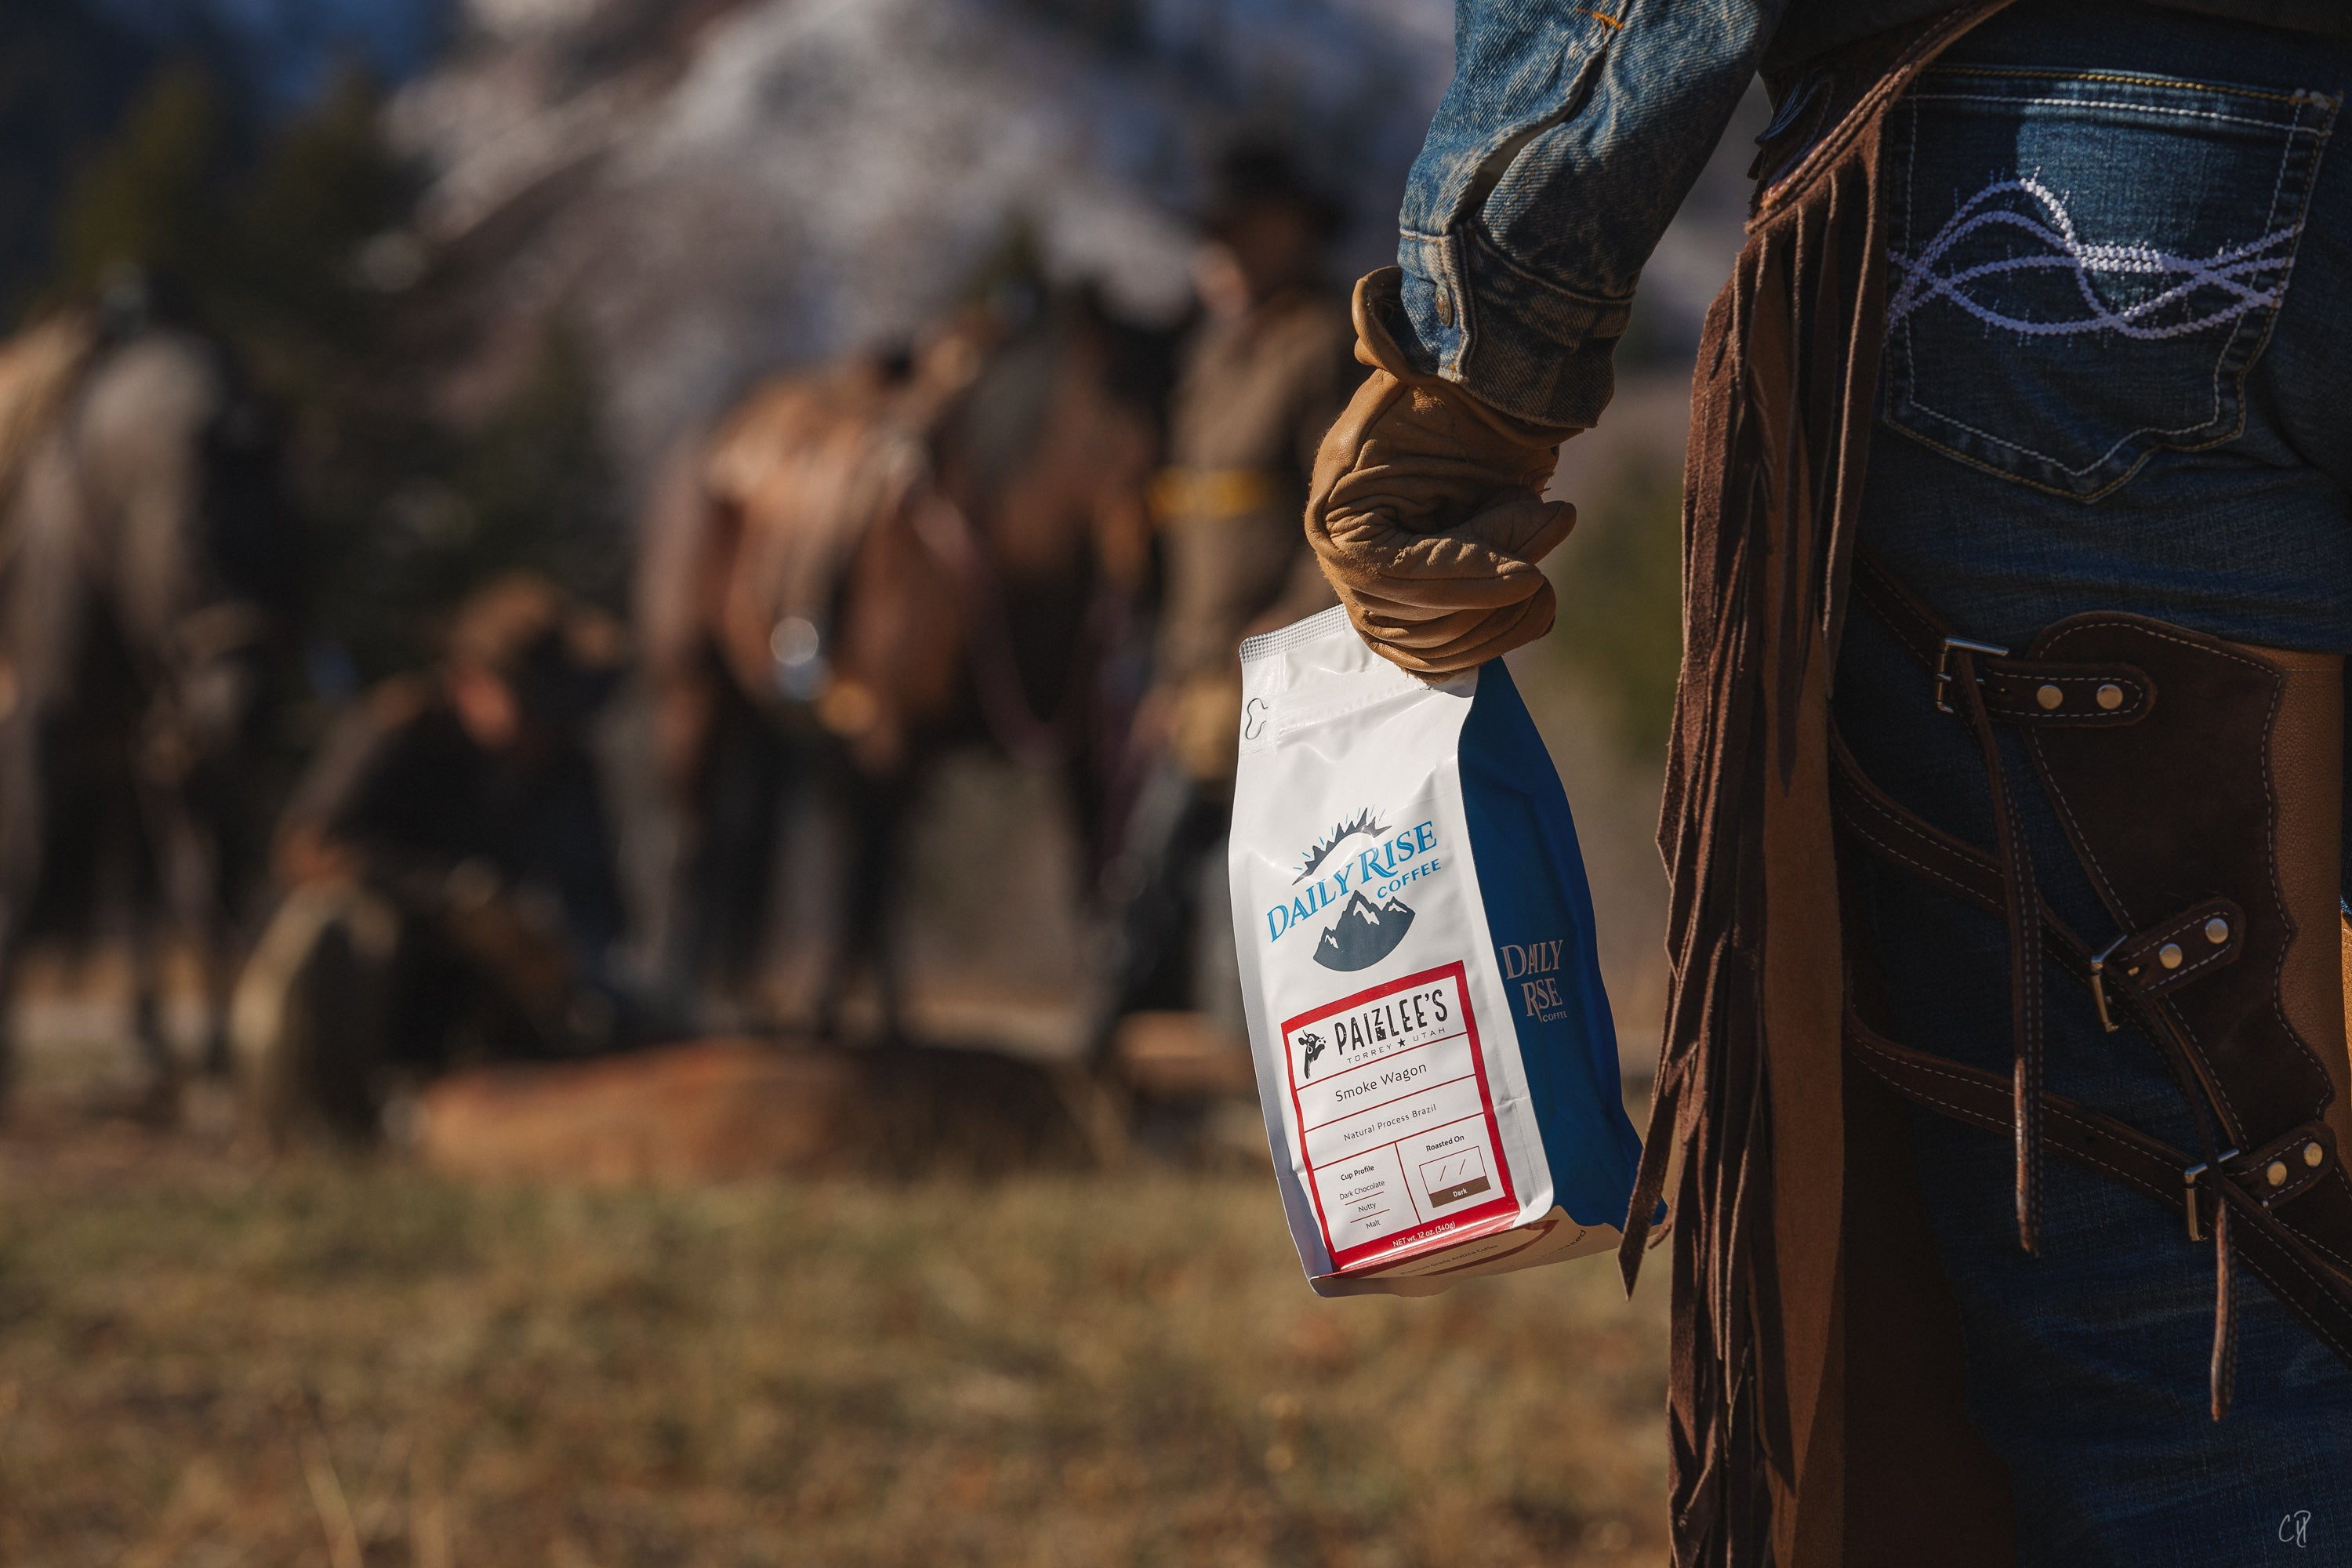 Smoke Wagon Blend by Paizlee's and Daily Rise Coffee Co.